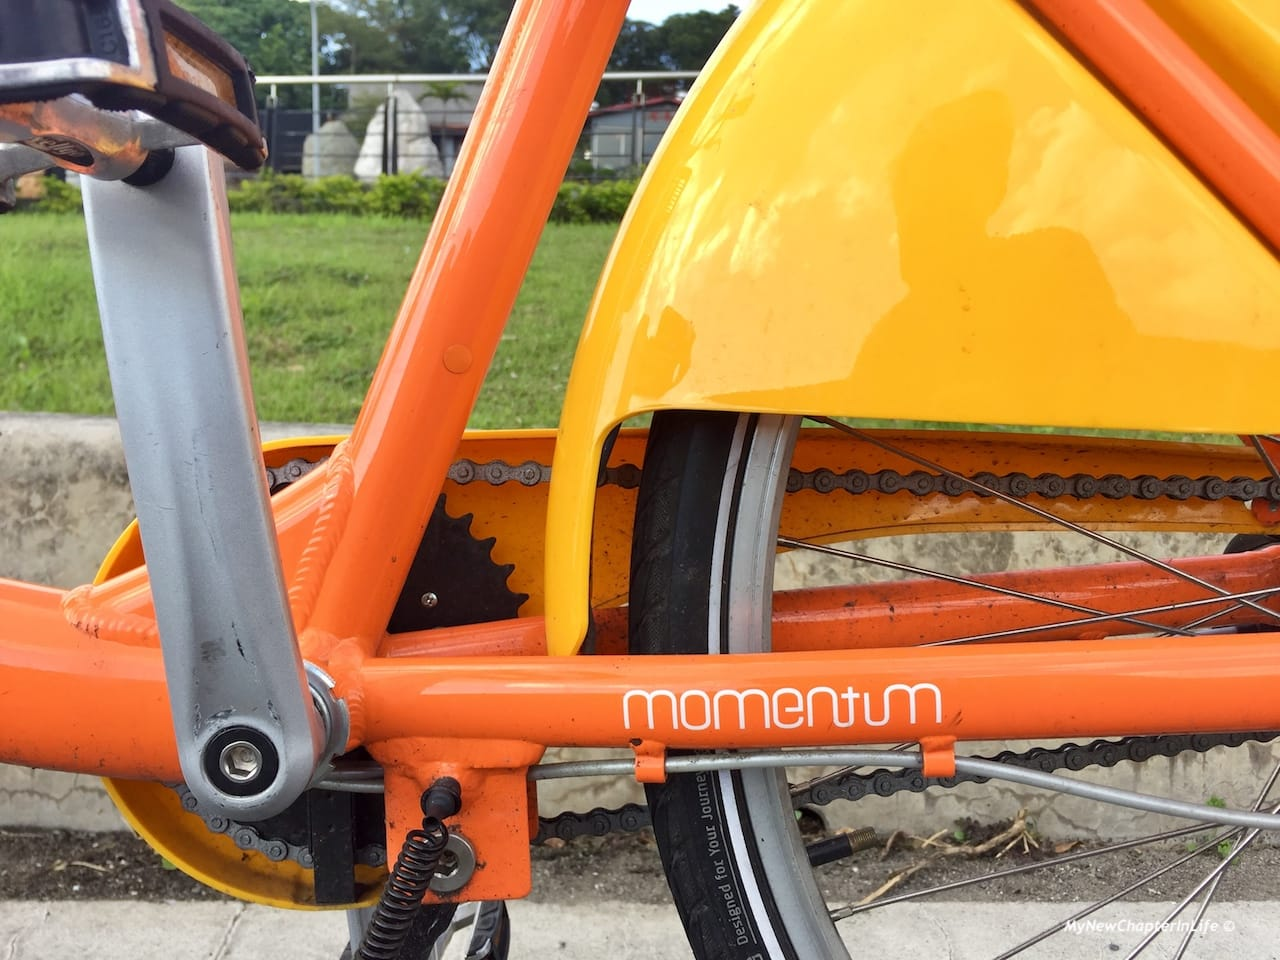 微笑單車其實是㨗安特生產的Momentum YouBike is actually the Giant Momentum